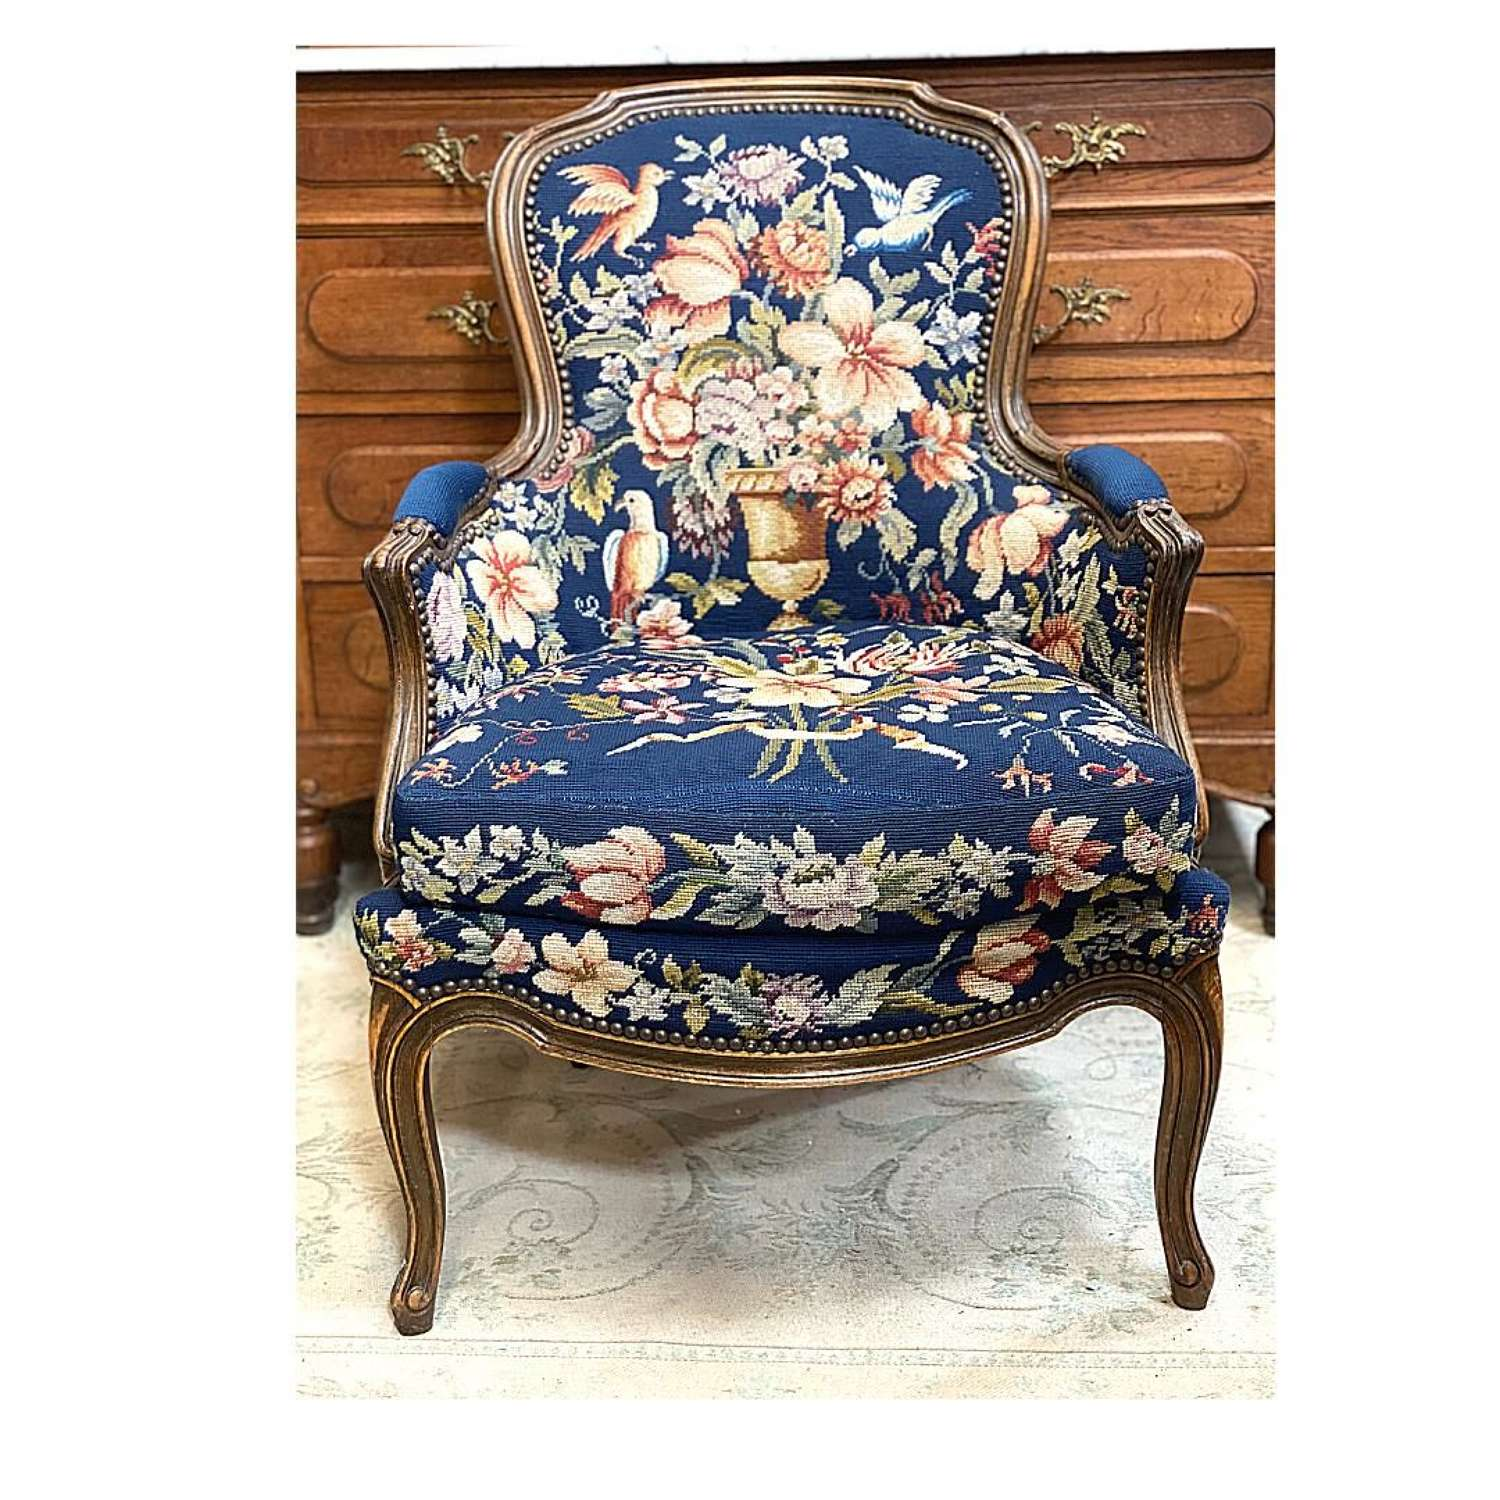 Vintage armchair with a royal blue tapestry